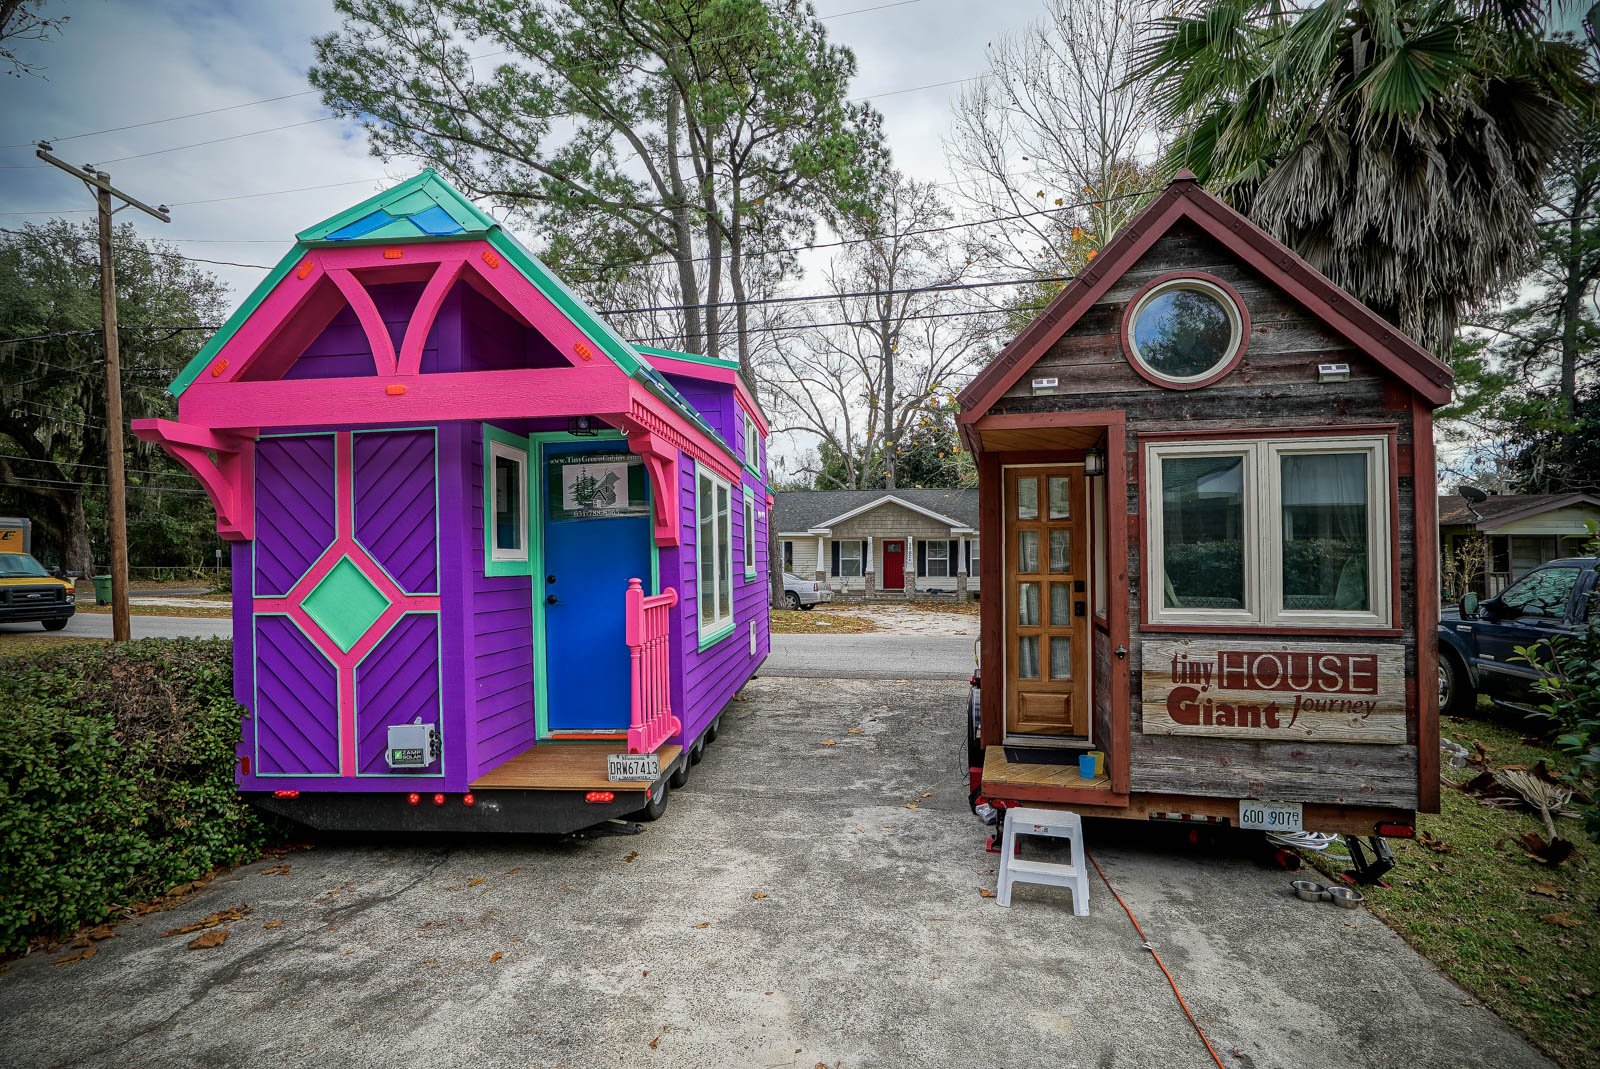 thgj and the ravenlore.jpg?resize=412,232 - Firefighters Designed Tiny, Colorful House That Looks Like It's From A Fairytale